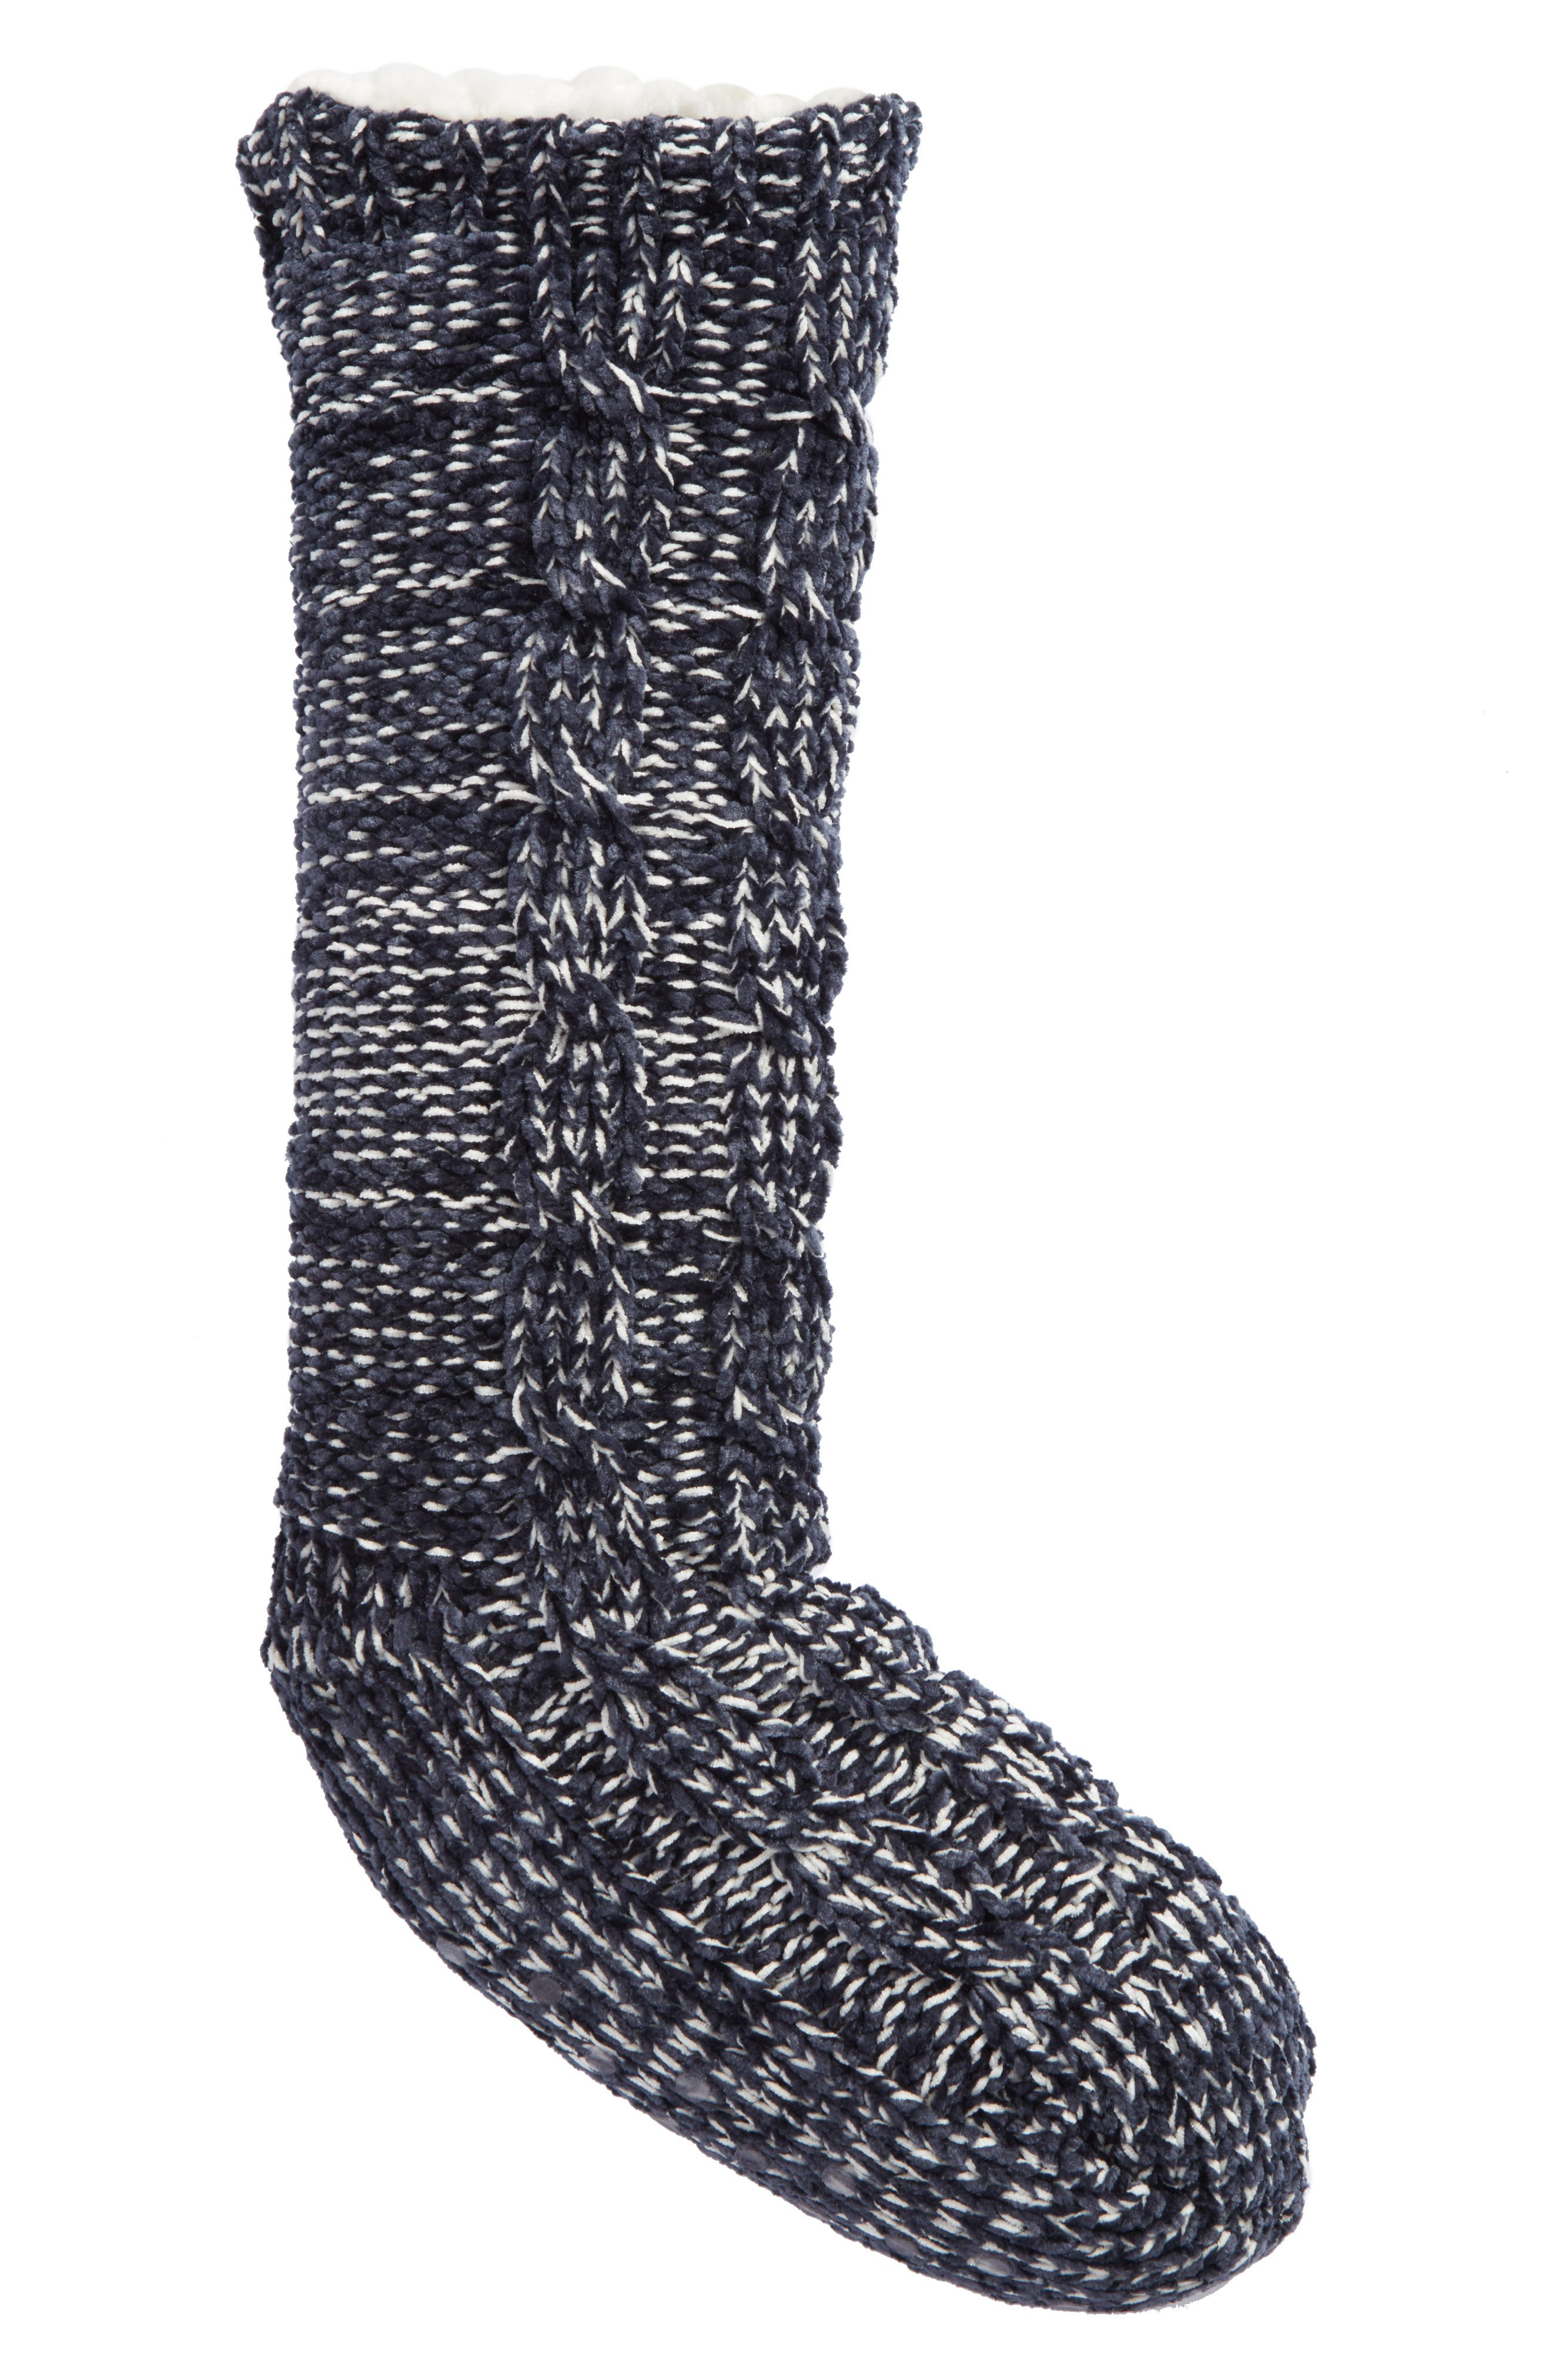 Cable Knit Slipper Socks,                             Main thumbnail 1, color,                             Navy